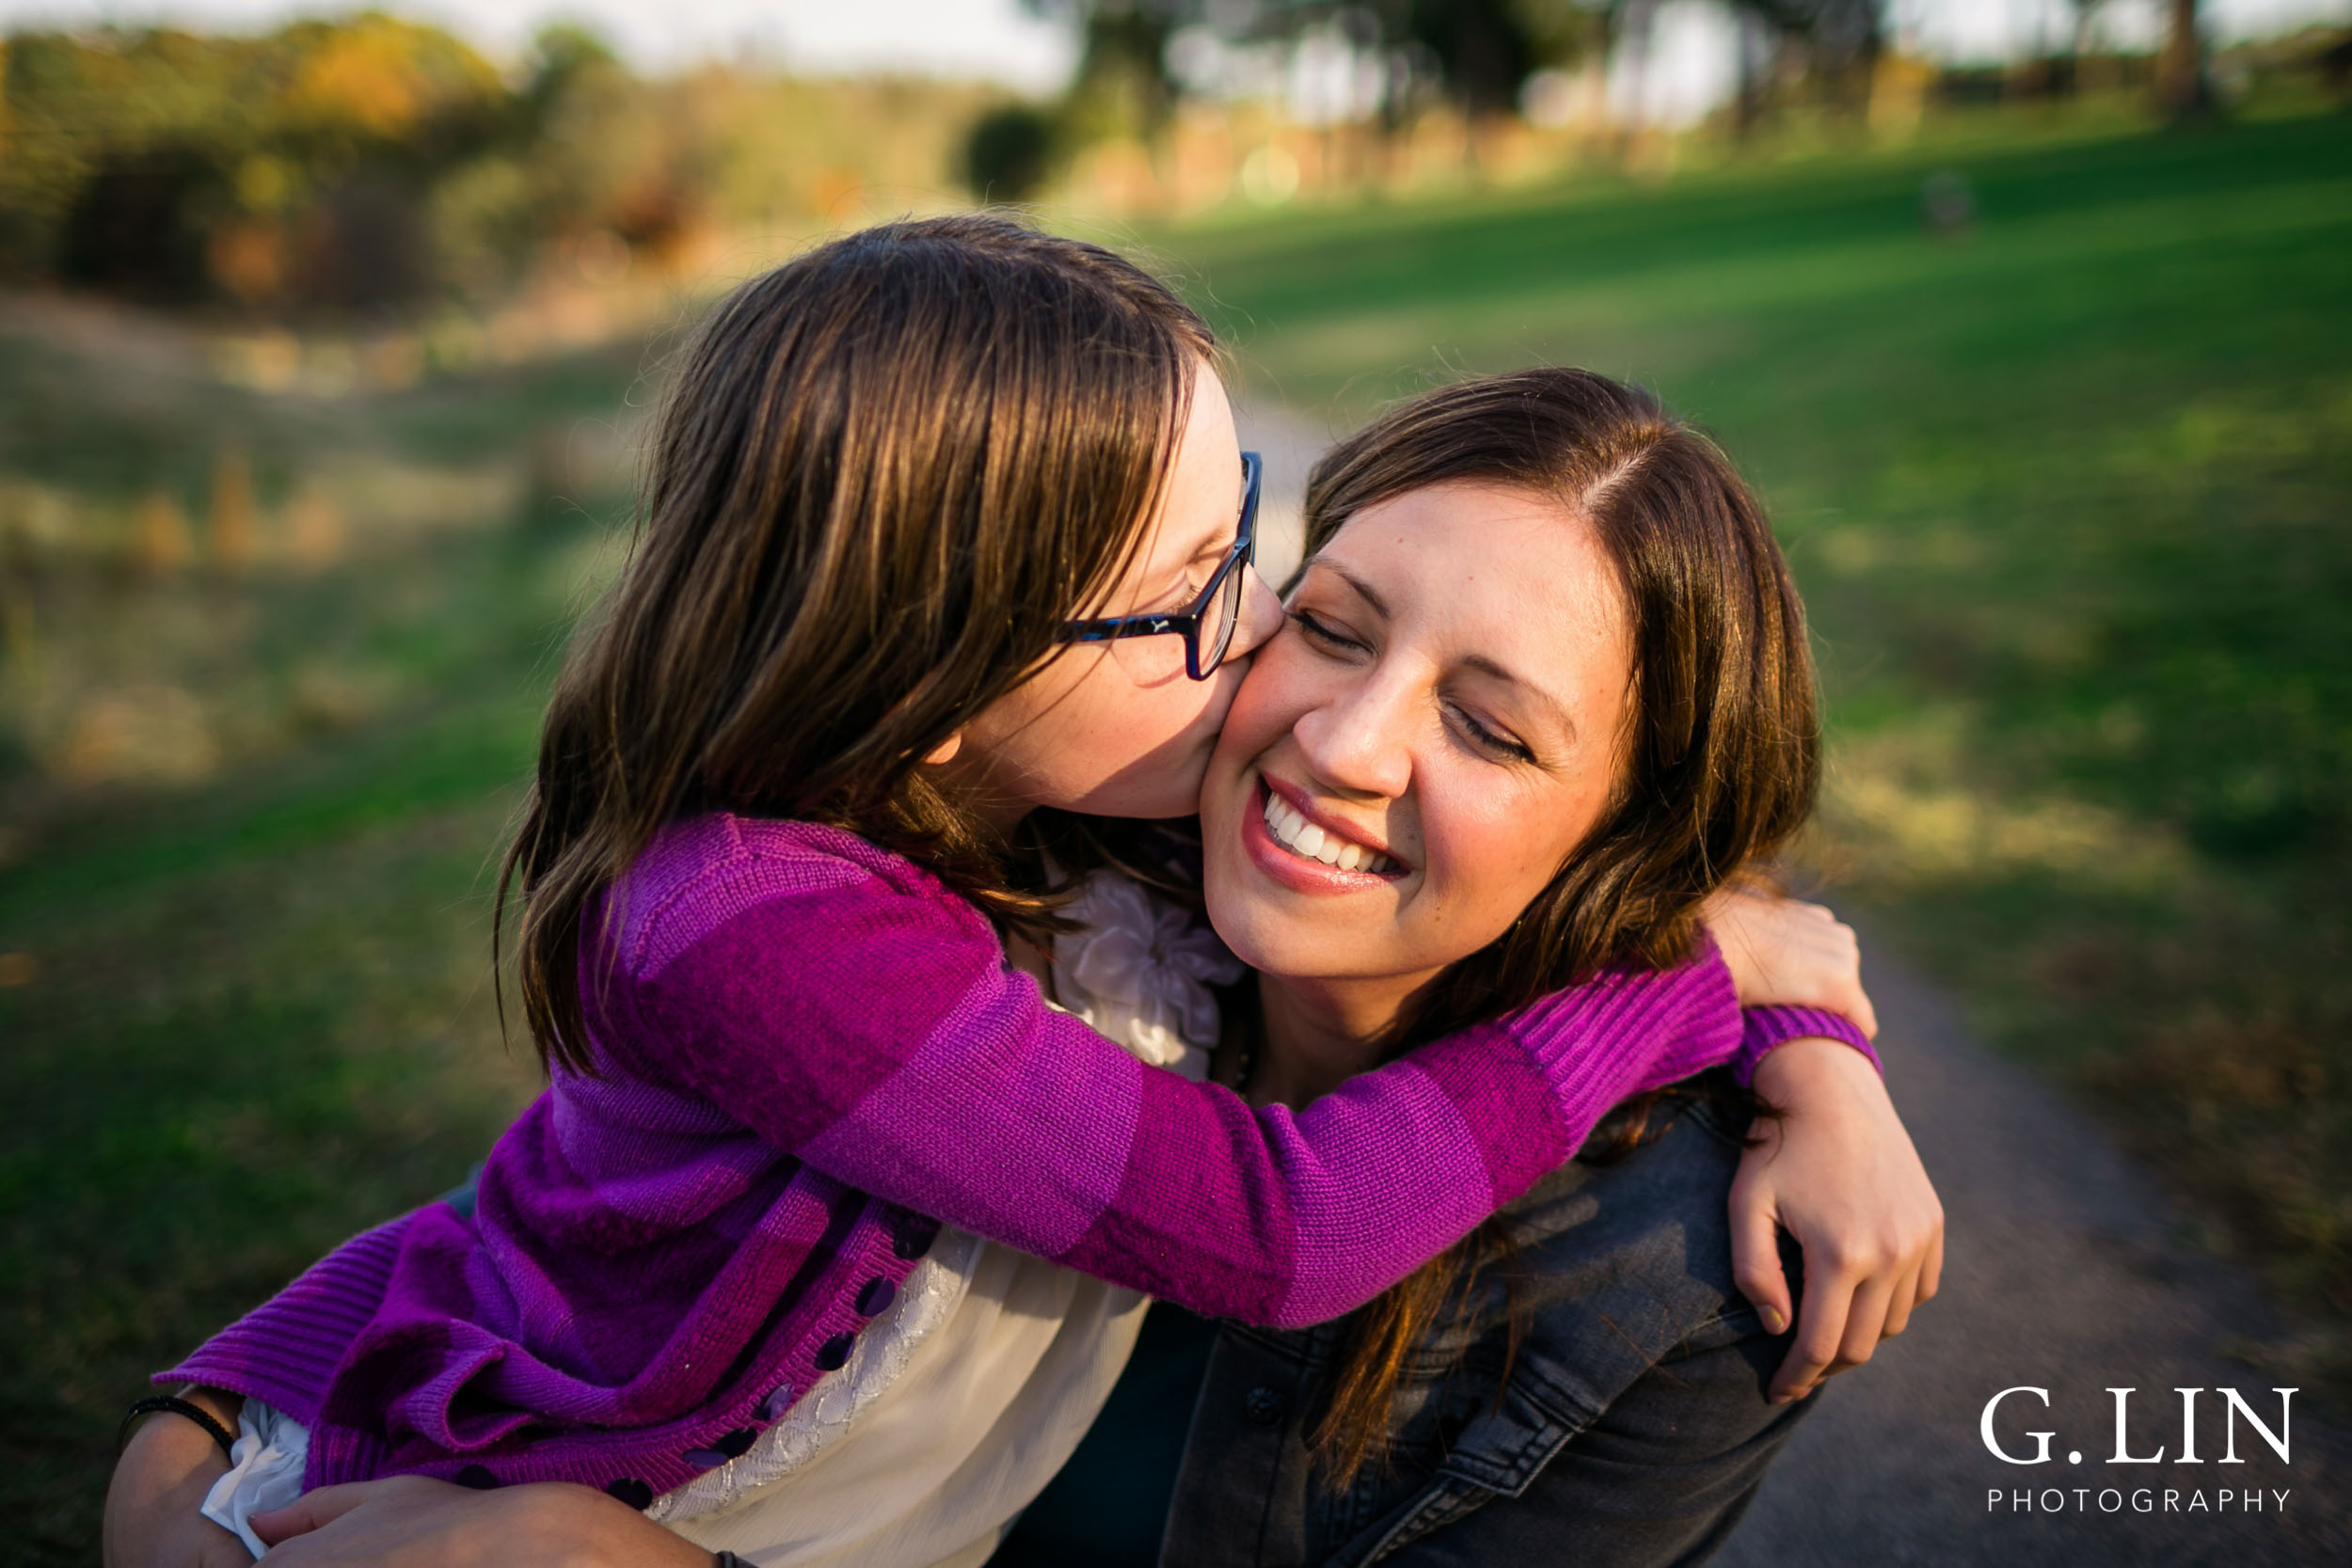 Raleigh Family Photographer | G. Lin Photography | Mother and daughter, sweet moment